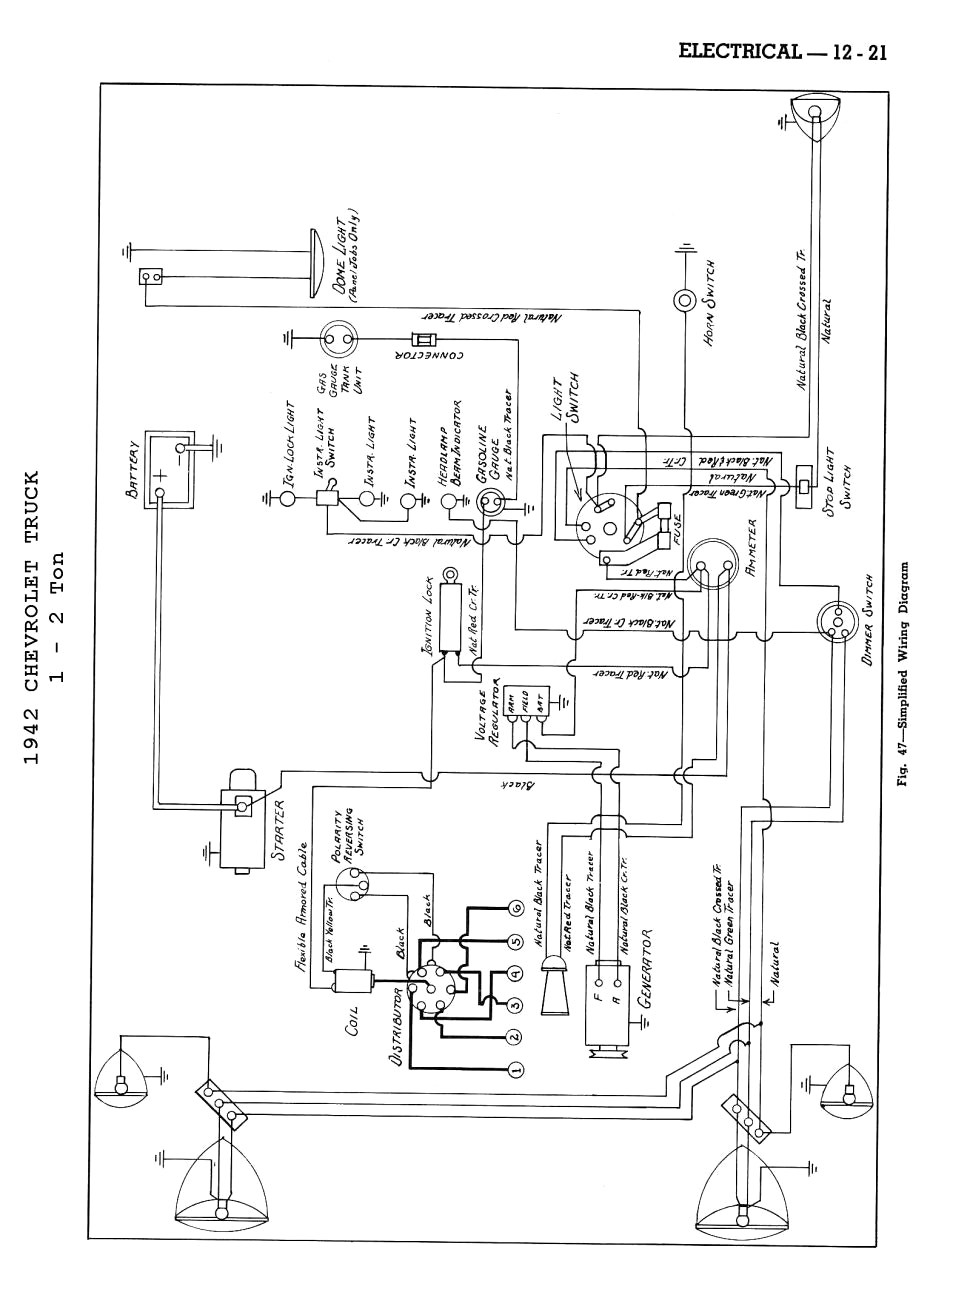 Coleman Mach Air Conditioner Wiring Diagram Elegant